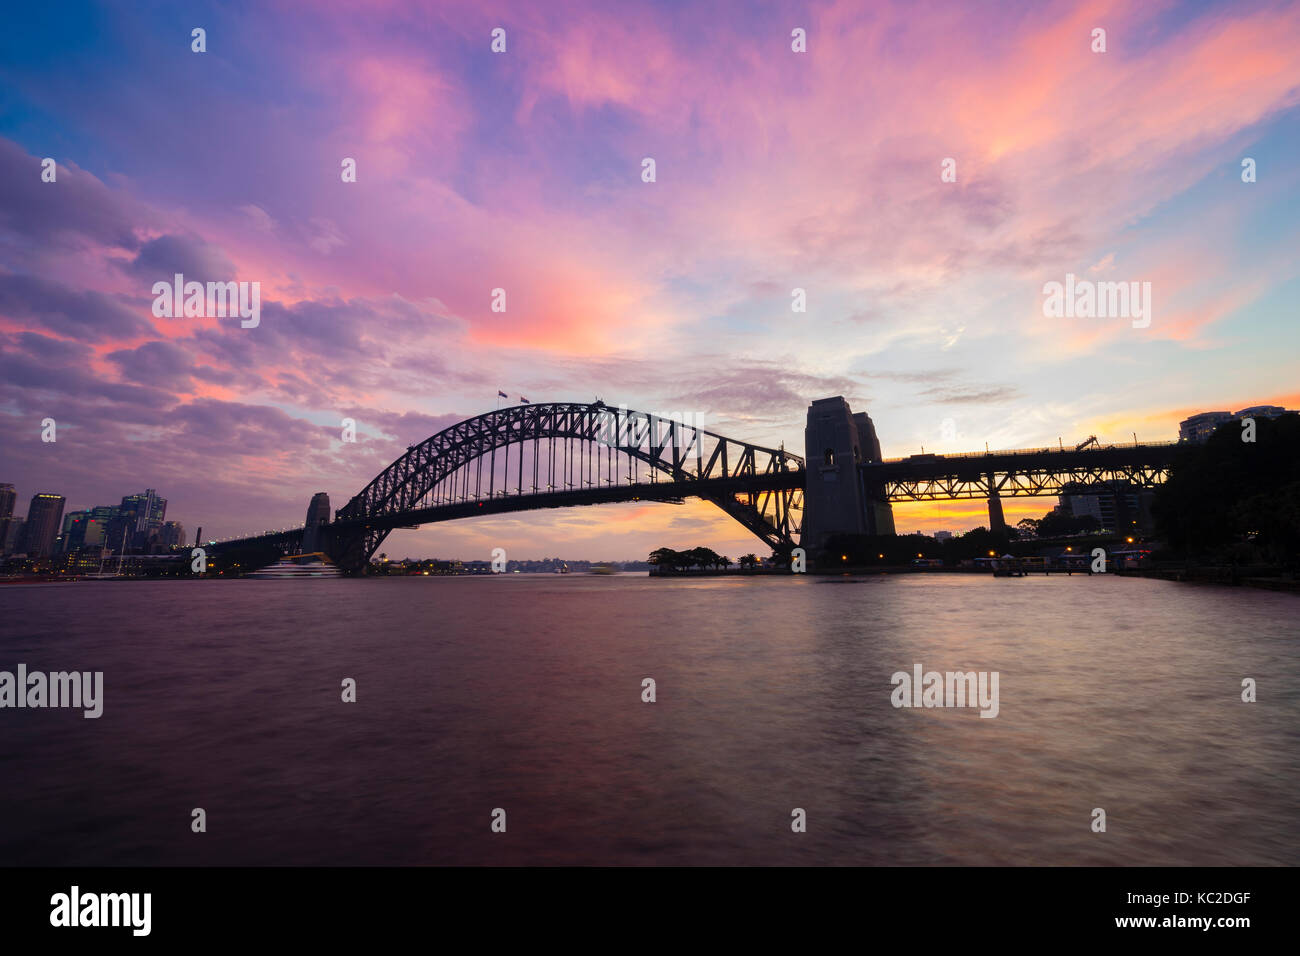 Sydney Harbour Bridge at sunset - Stock Image